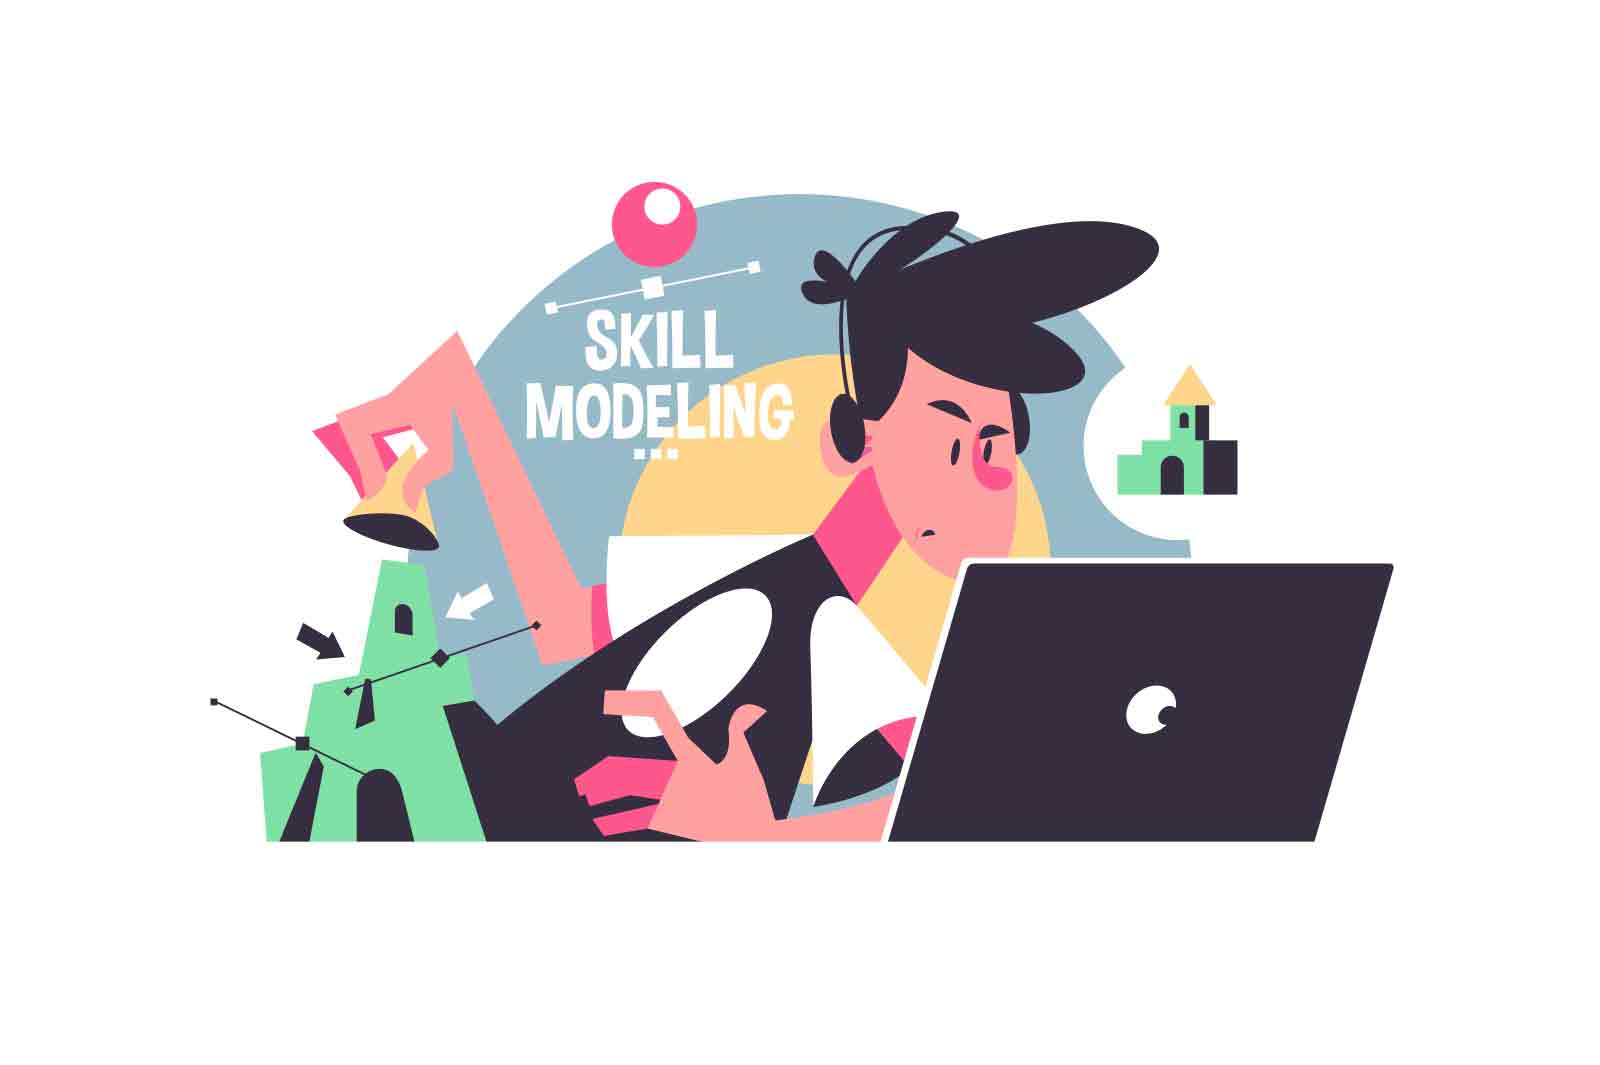 Guy busy with skill modeling vector illustration. Online school second lesson from home flat style. Remote education, knowledge, new information concept. Isolated on white background